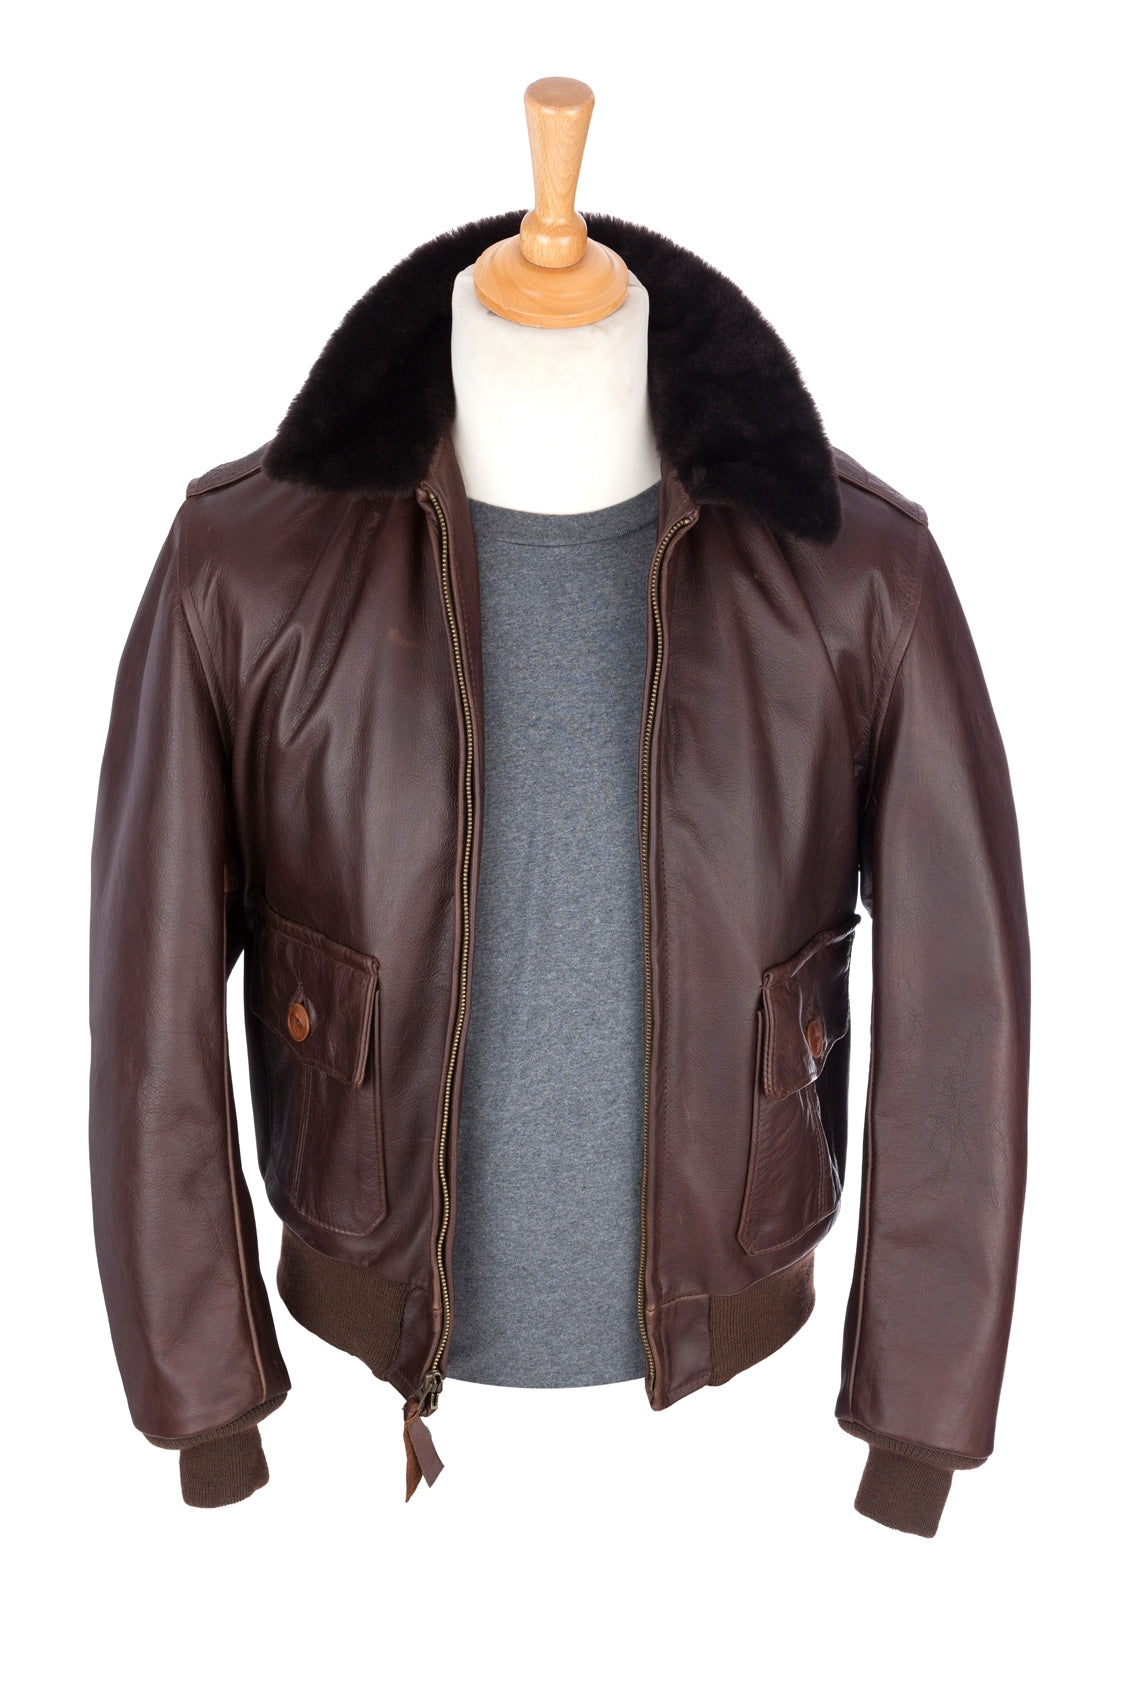 Regent and Aero Leather - A2 Bomber Jacket - Brown Steerhide - Regent Tailoring